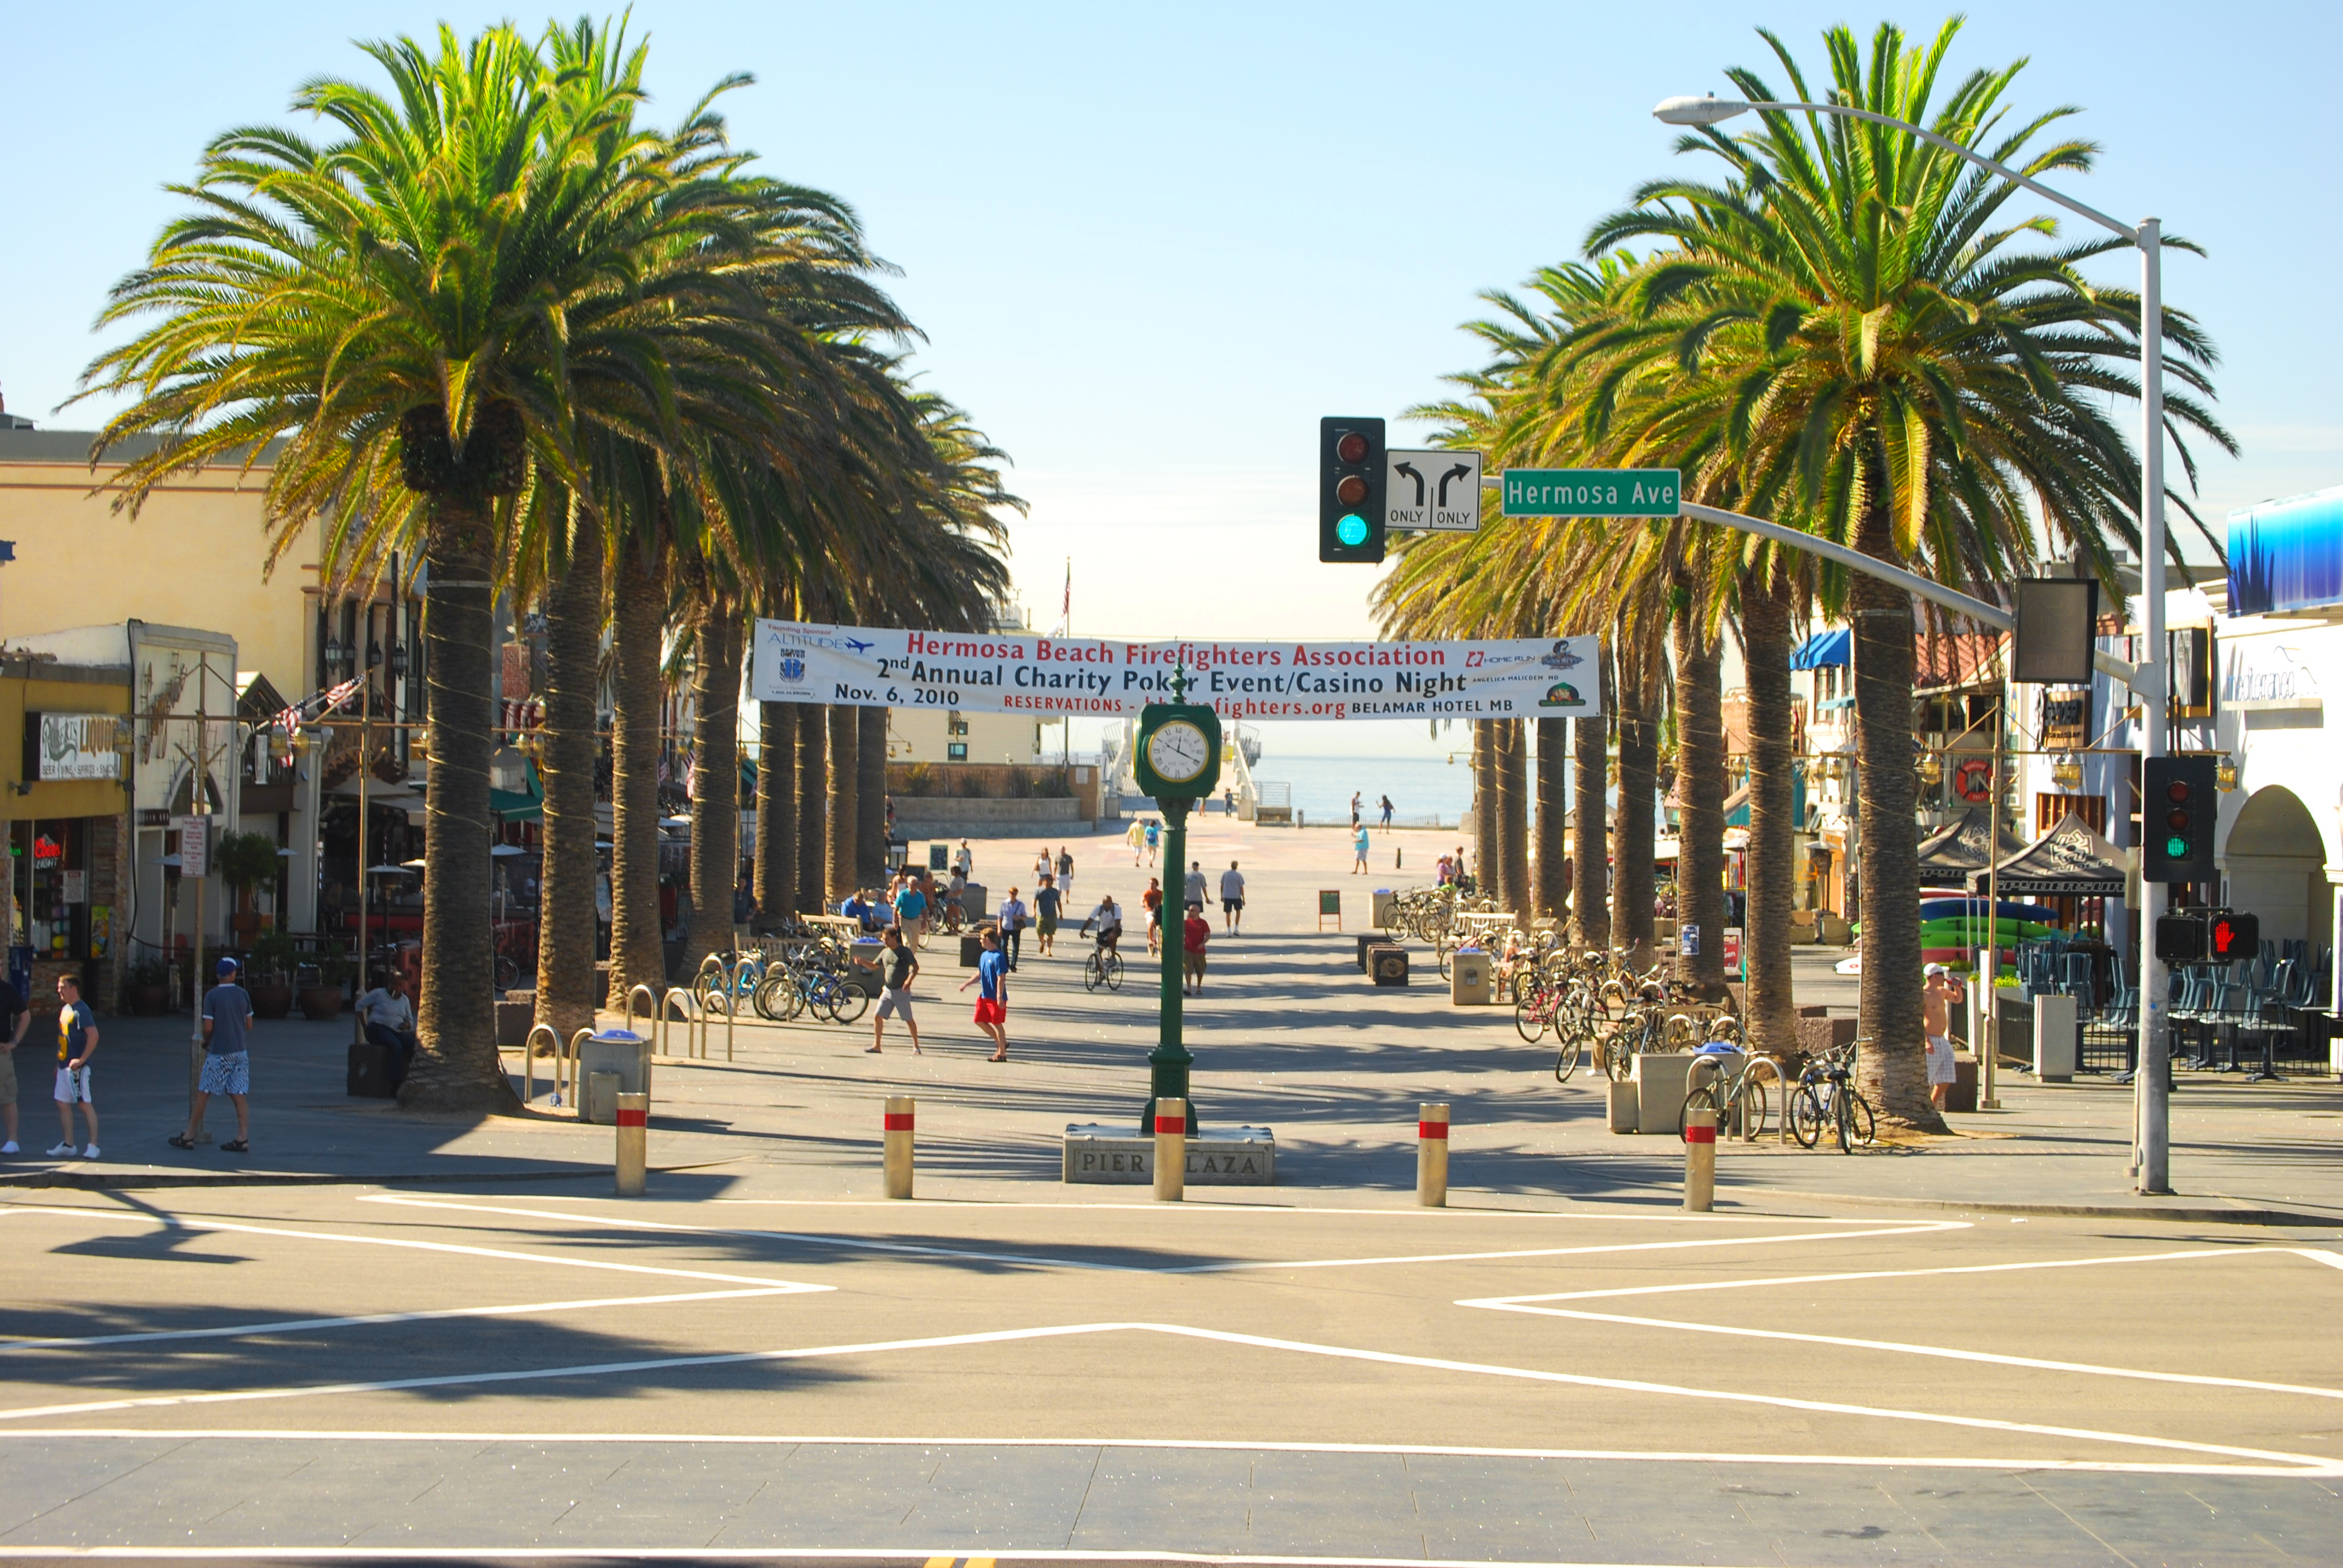 hermosa beach We would like to show you a description here but the site won't allow us.